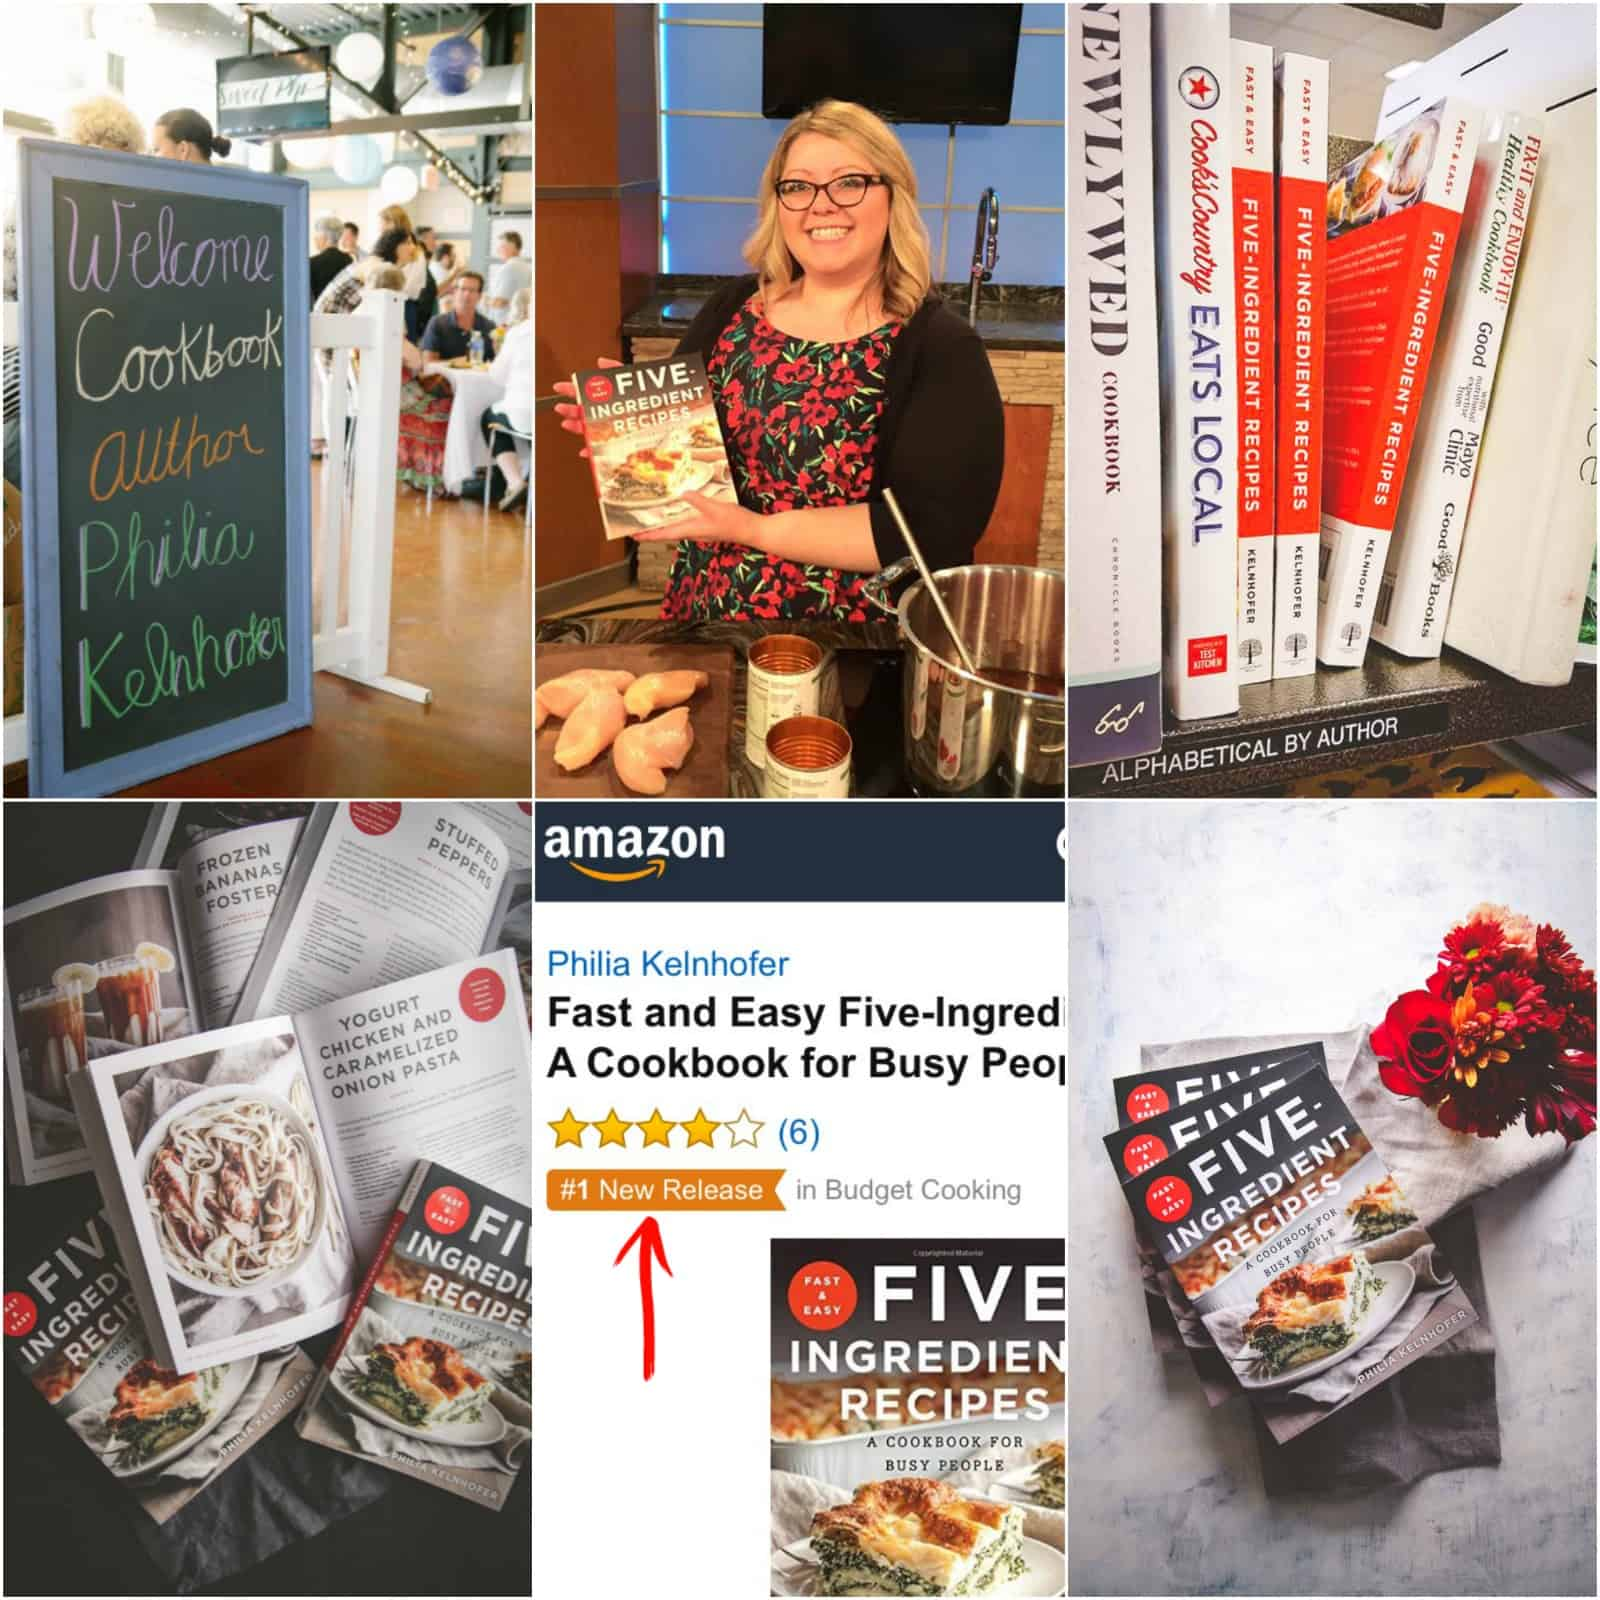 The best cookbook is the Fast and Easy Five Ingredient Recipes - 5 ingredient recipes cookbook